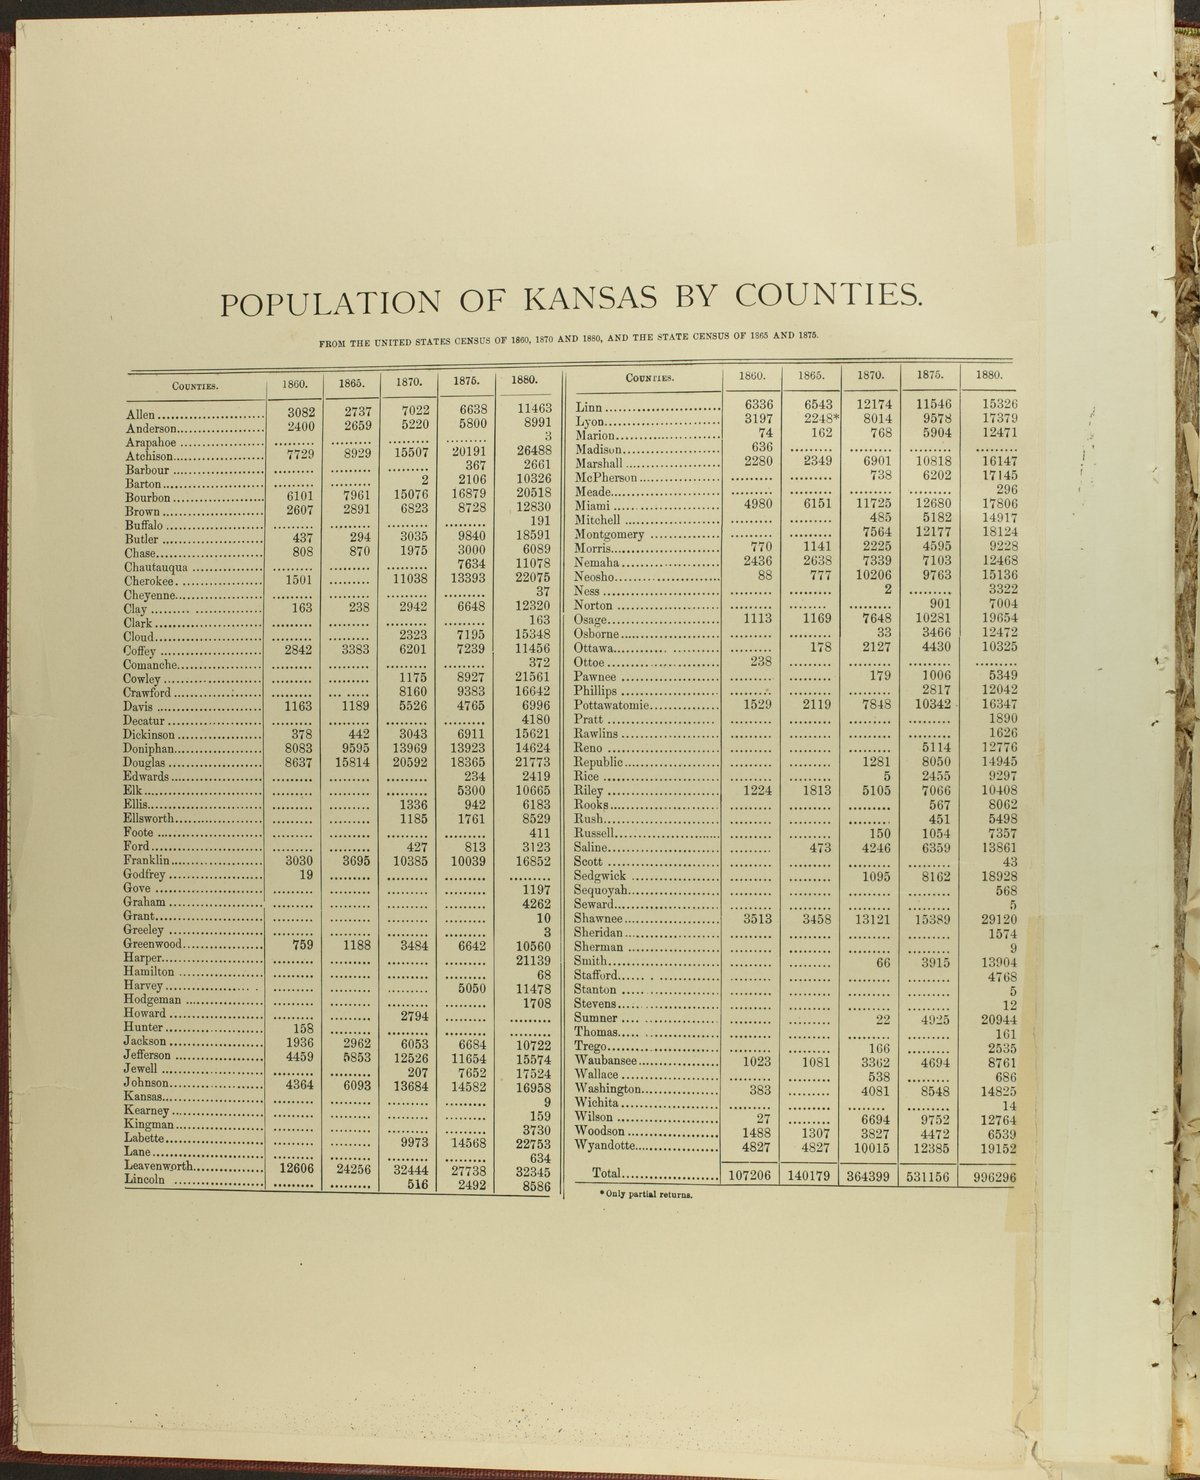 Historical plat book of Doniphan County, Kansas - Population of Kansas by Counties